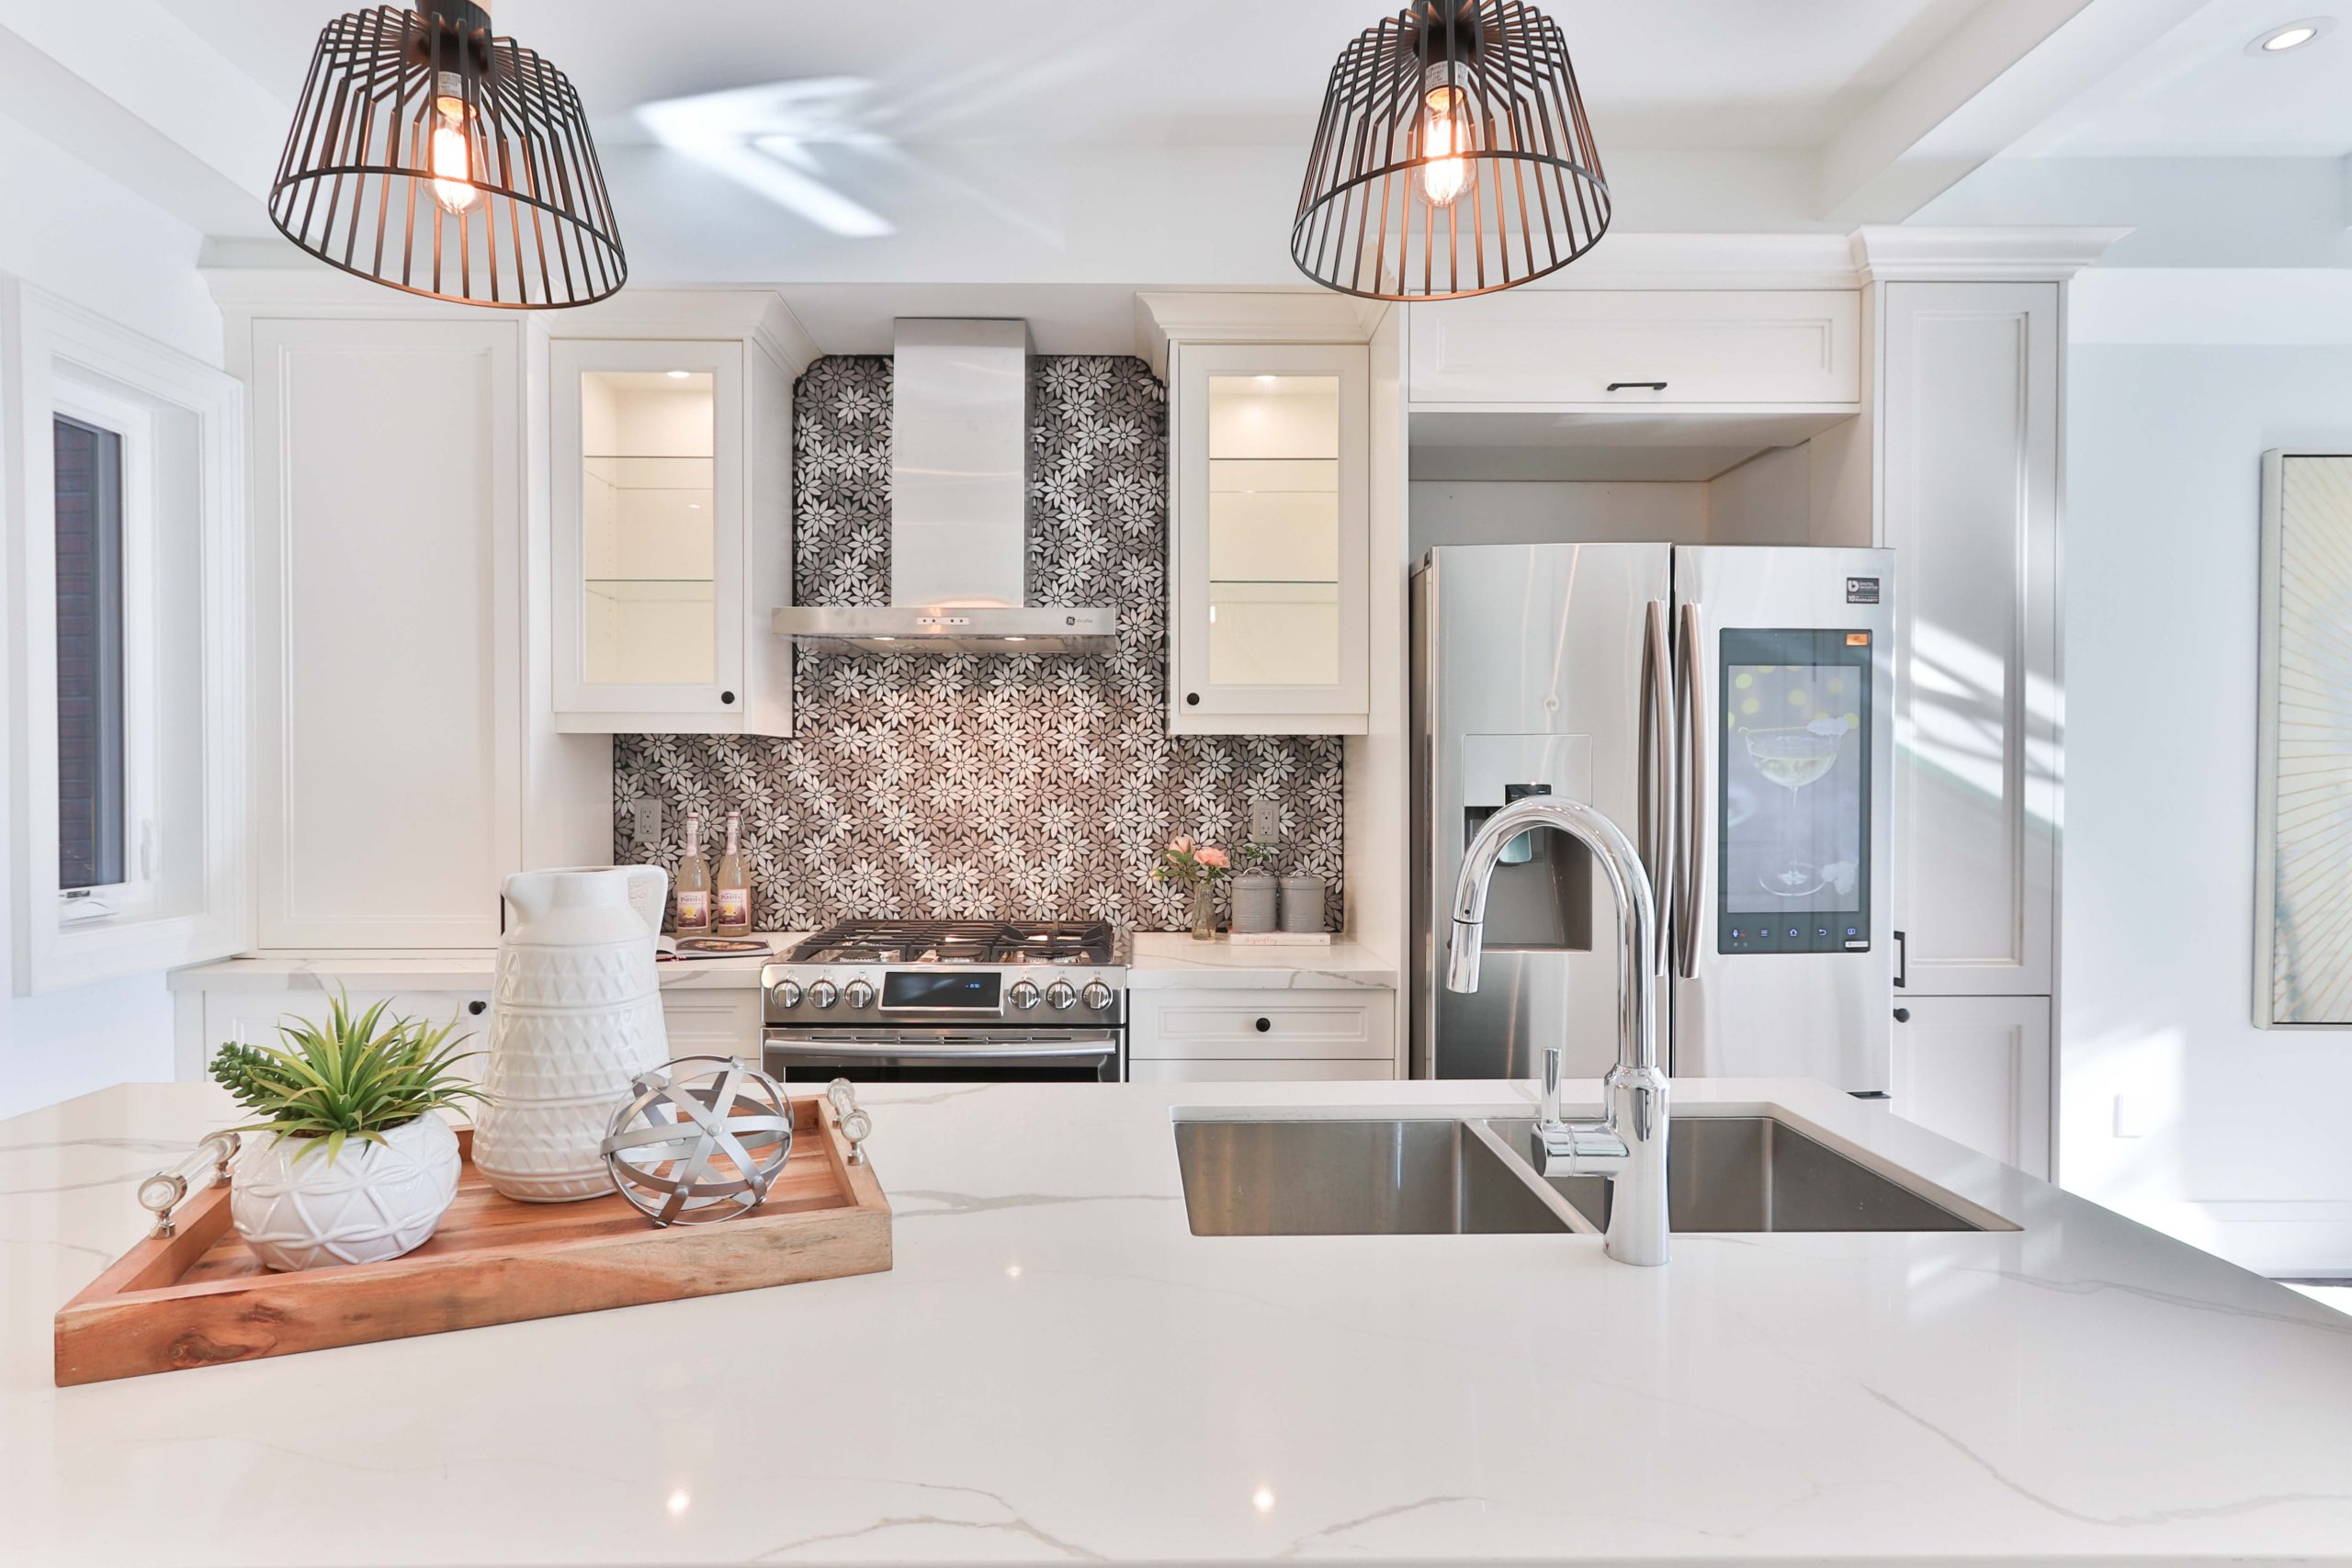 beautiful kitchen lighting by the dirt connections remodeling team